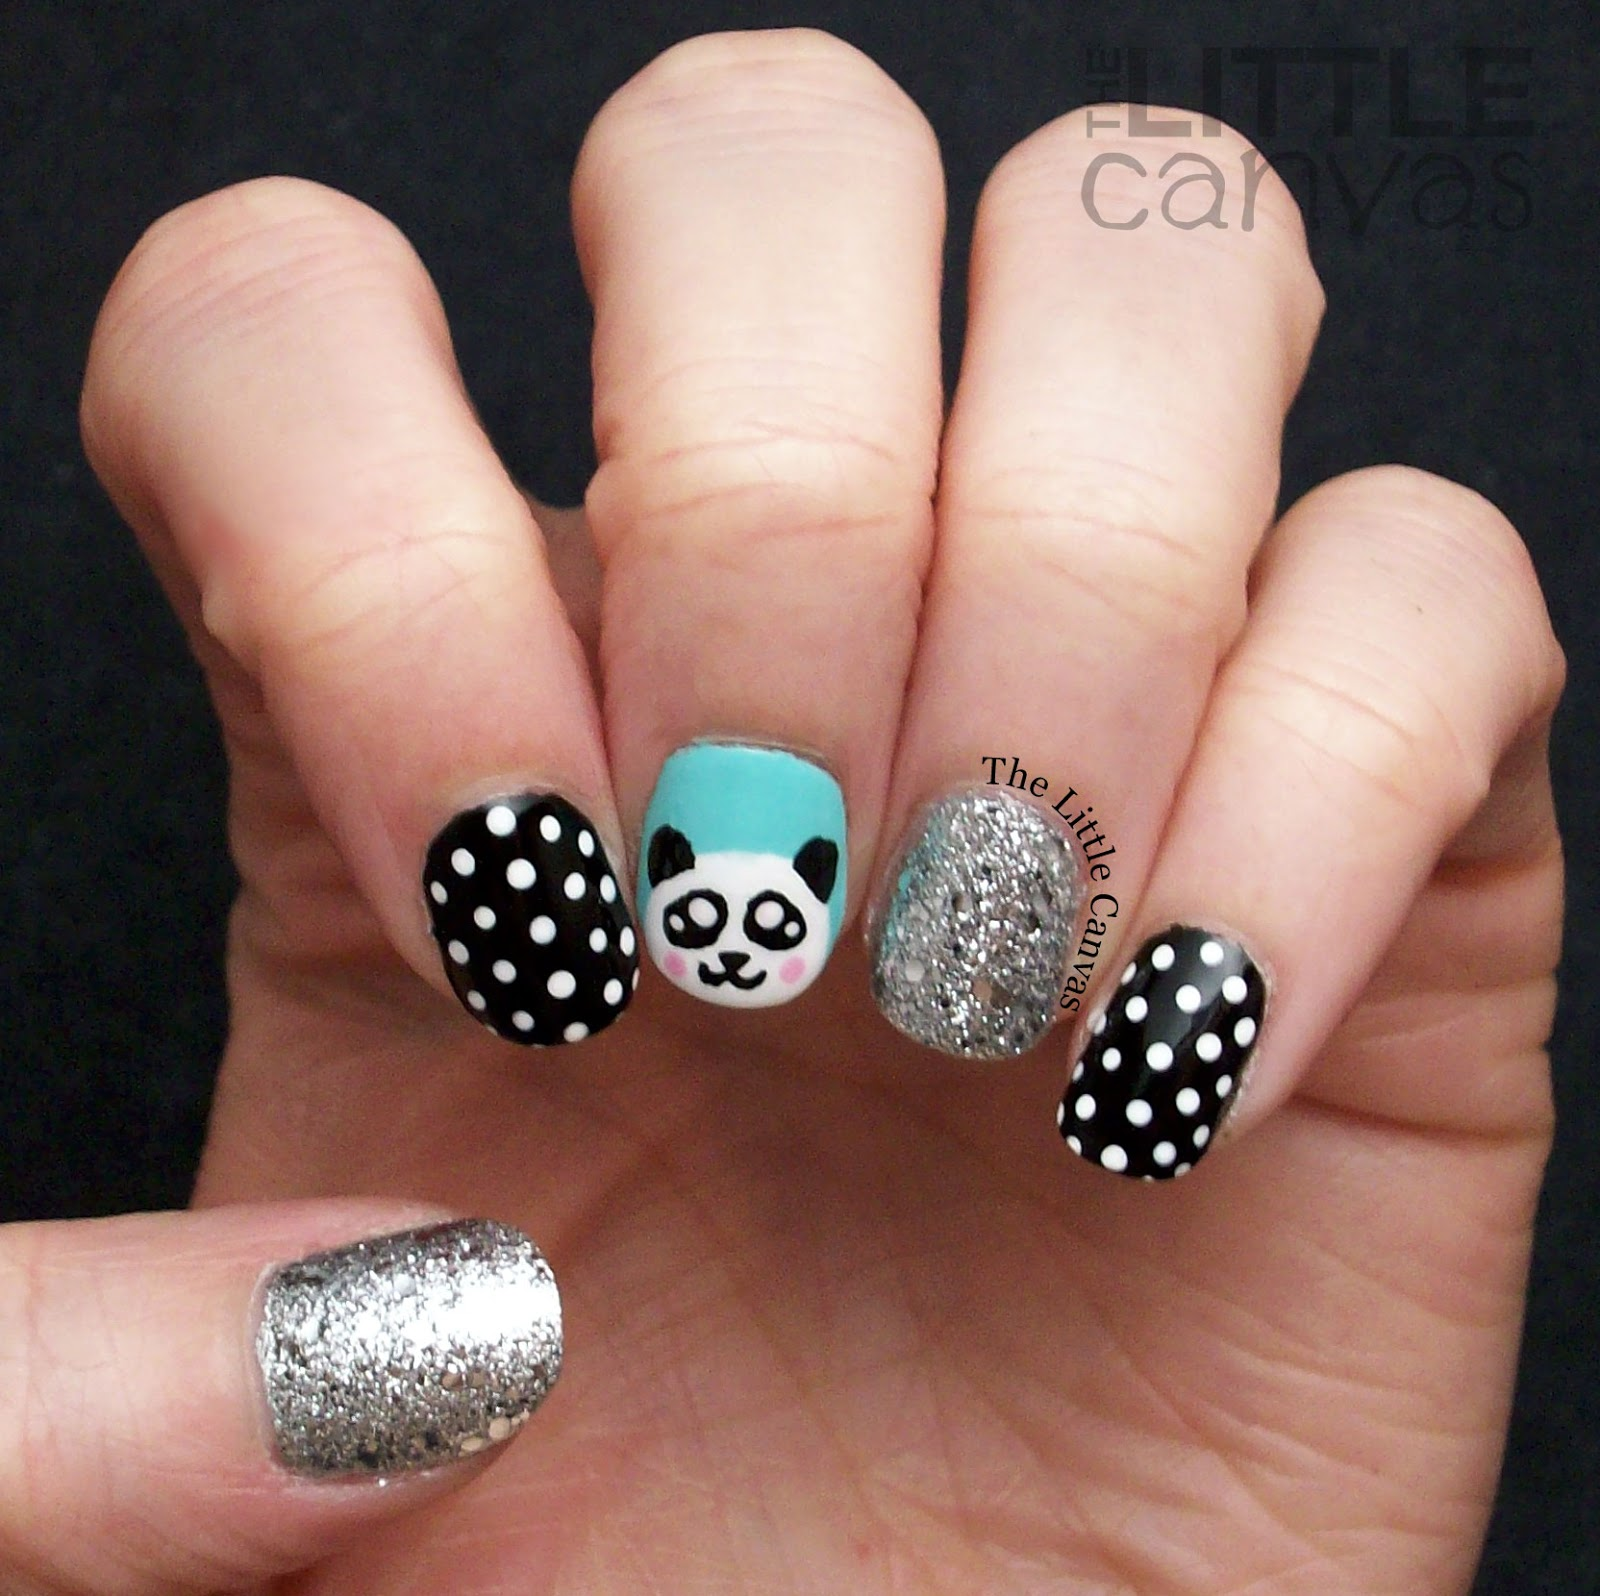 Penguin nail art the little canvas the one with the adorable panda bea prinsesfo Image collections